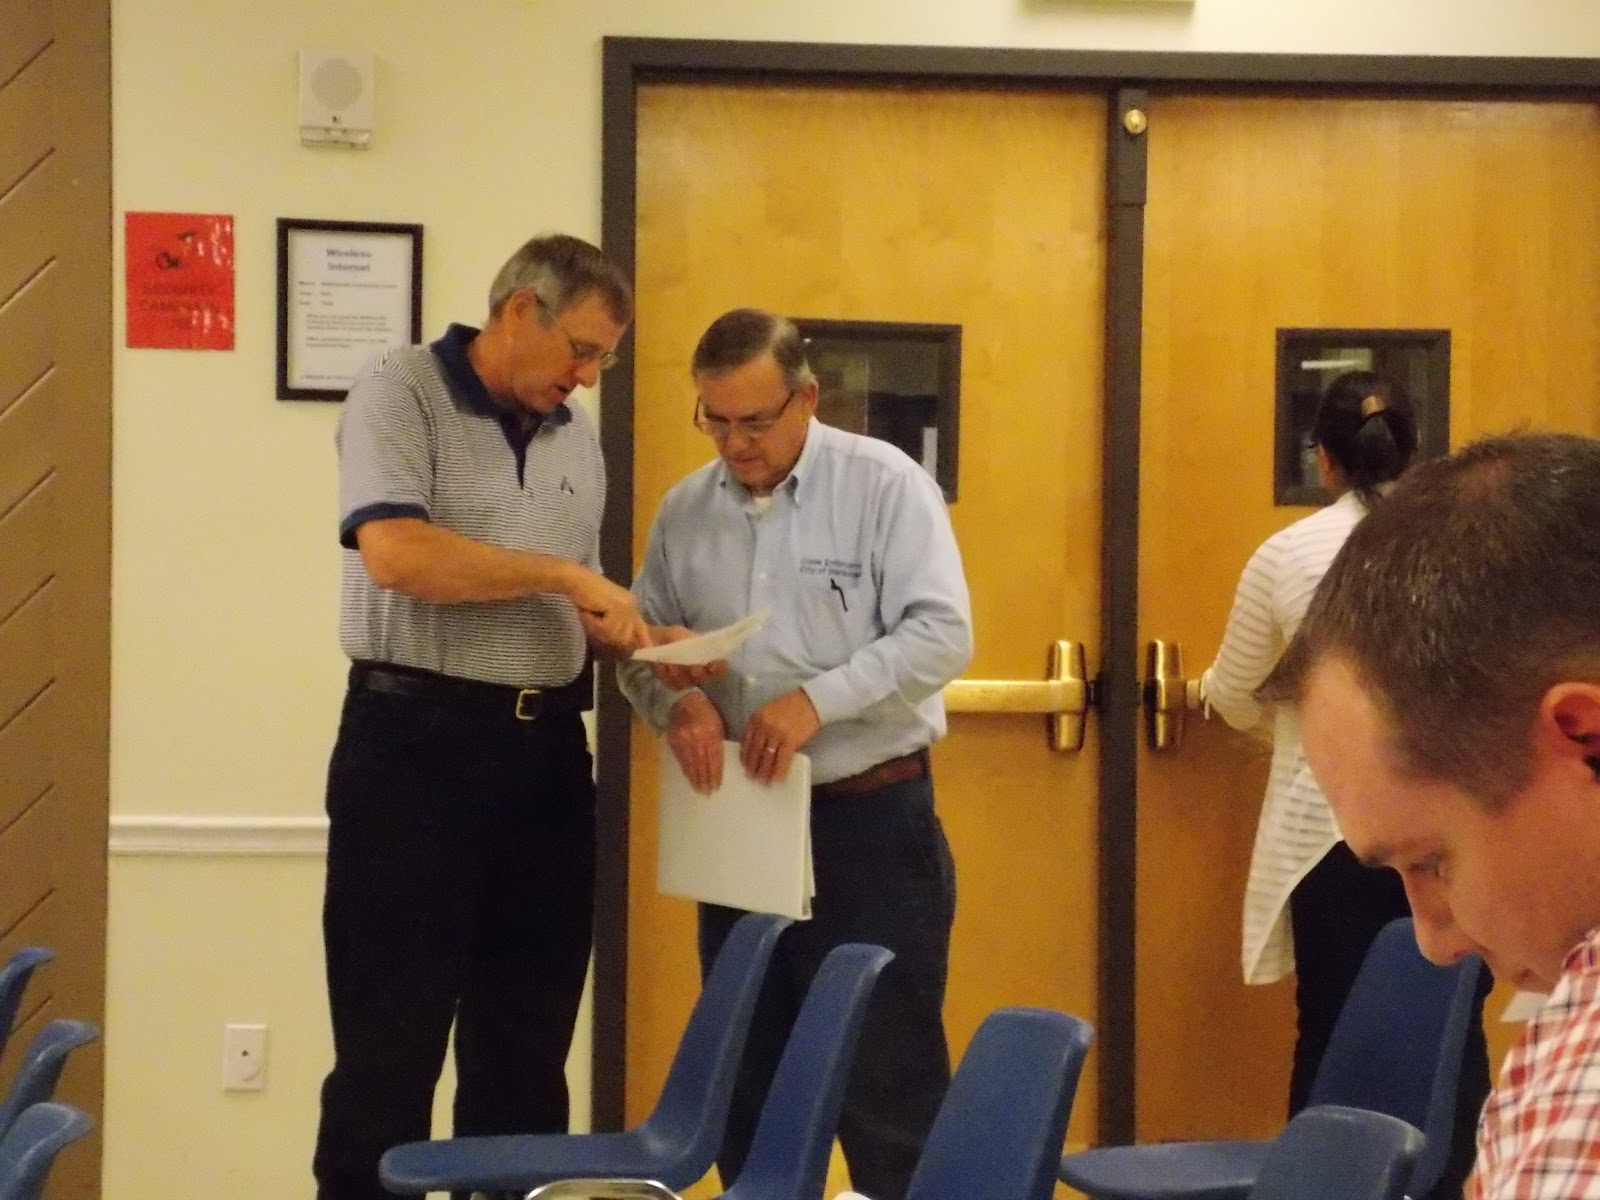 mike link and robert hegge discuss options during an extended zoning chat during the meeting wednesday